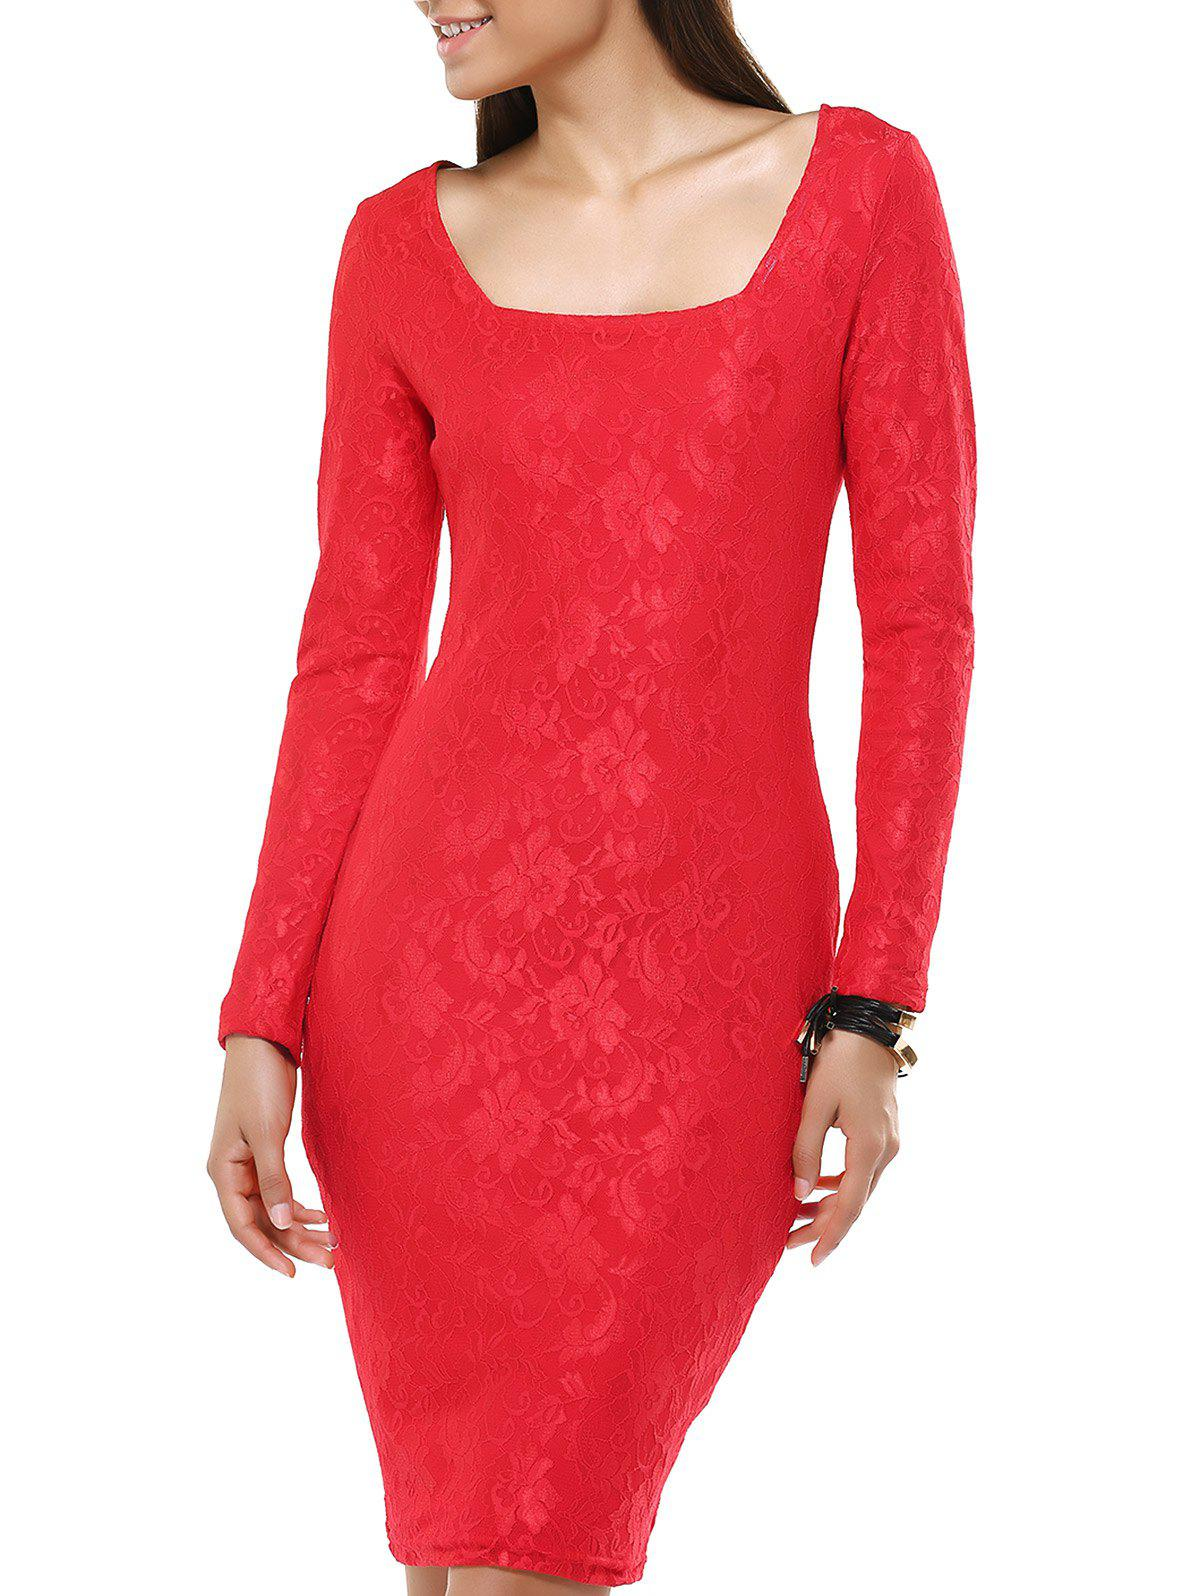 Ladylike Long Sleeve Jacquard Bodycon Dress For Women - RED 2XL